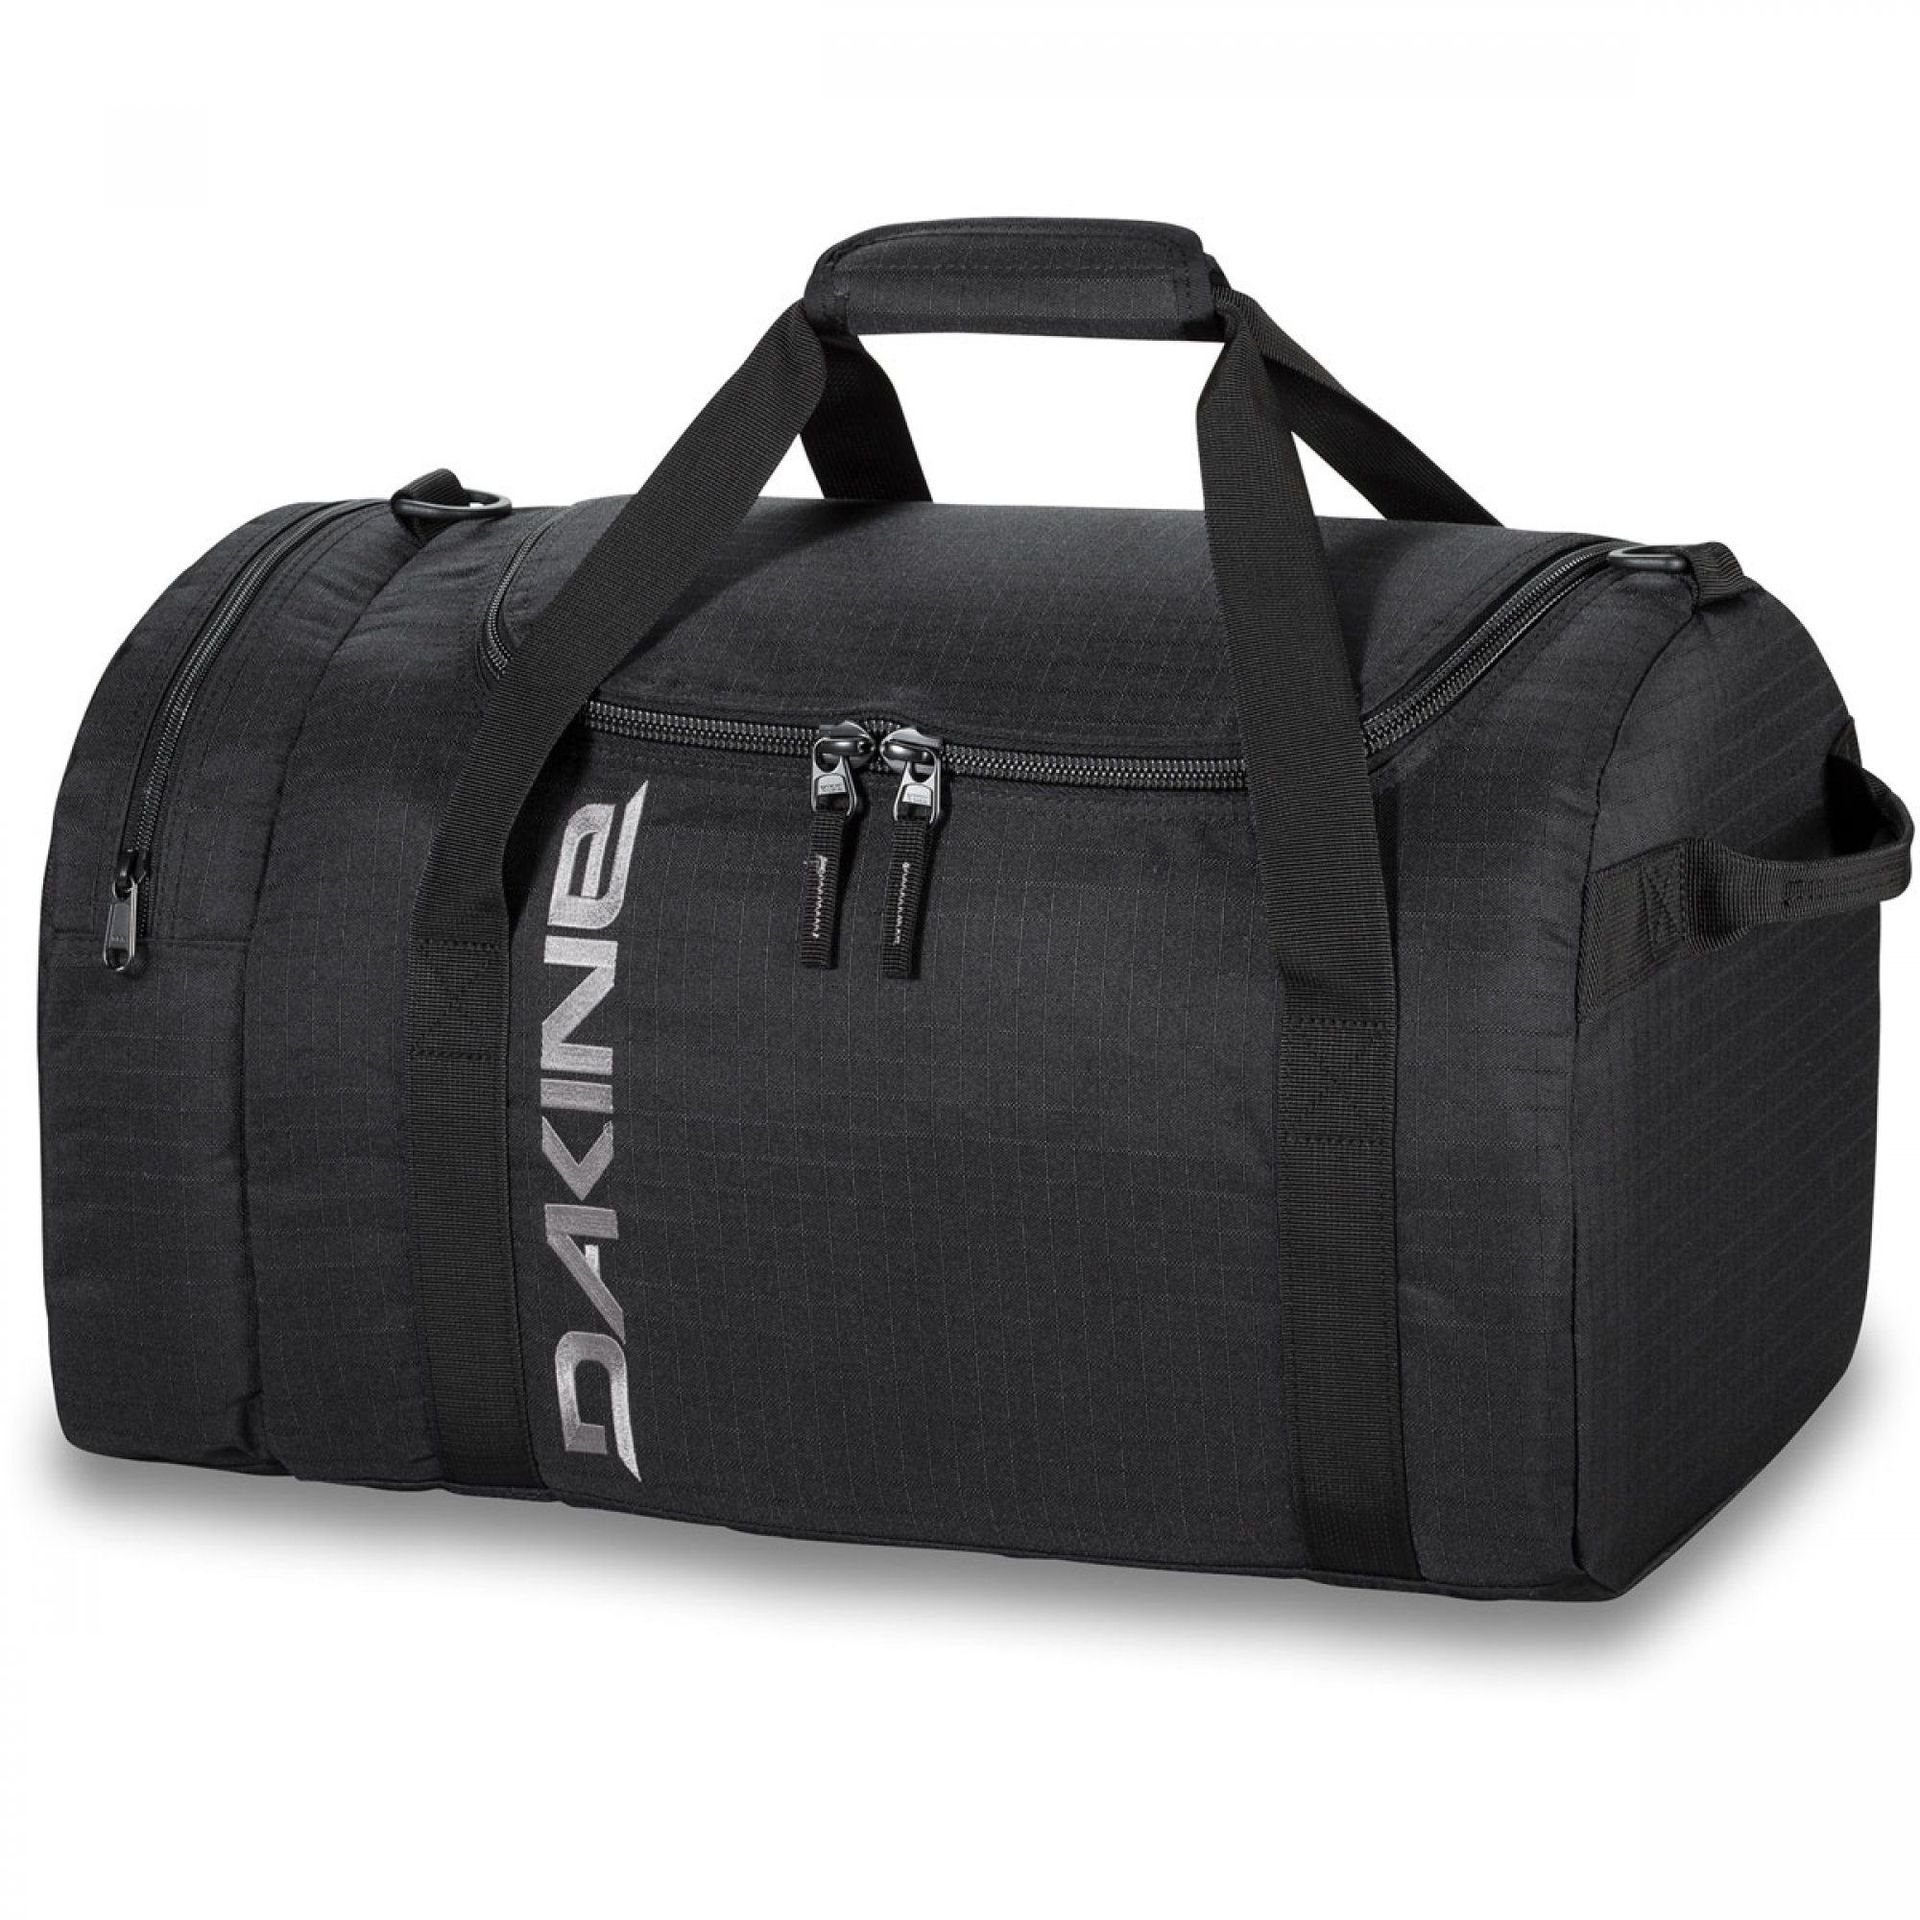 TORBA PODRÓŻNA DAKINE EQ BAG 51 L BLACK 1